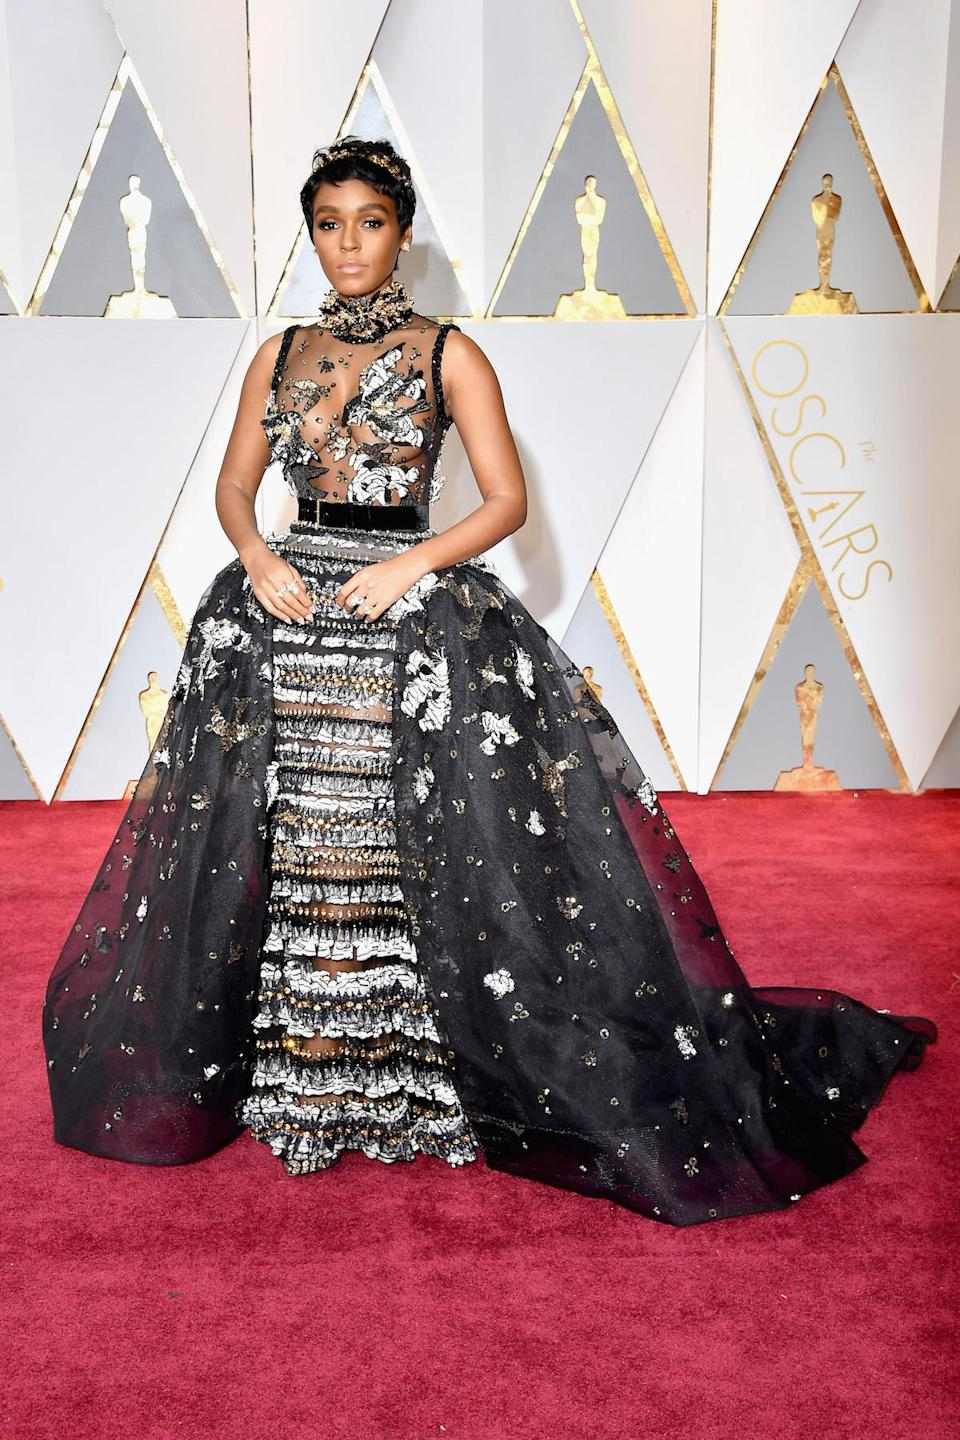 "<p><a href=""https://www.yahoo.com/style/janelle-monae-ups-her-back-and-white-game-for-the-oscars-red-carpet-012015007.html"" data-ylk=""slk:Janelle Monae;outcm:mb_qualified_link;_E:mb_qualified_link;ct:story;"" class=""link rapid-noclick-resp yahoo-link"">Janelle Monae</a> sticks with a black and white uniform. Yet for the 2017 Oscars, where<em> Moonlight</em> won for best picture, she added some gold to her overall look.<em> (Photo: Getty Images)</em> </p>"